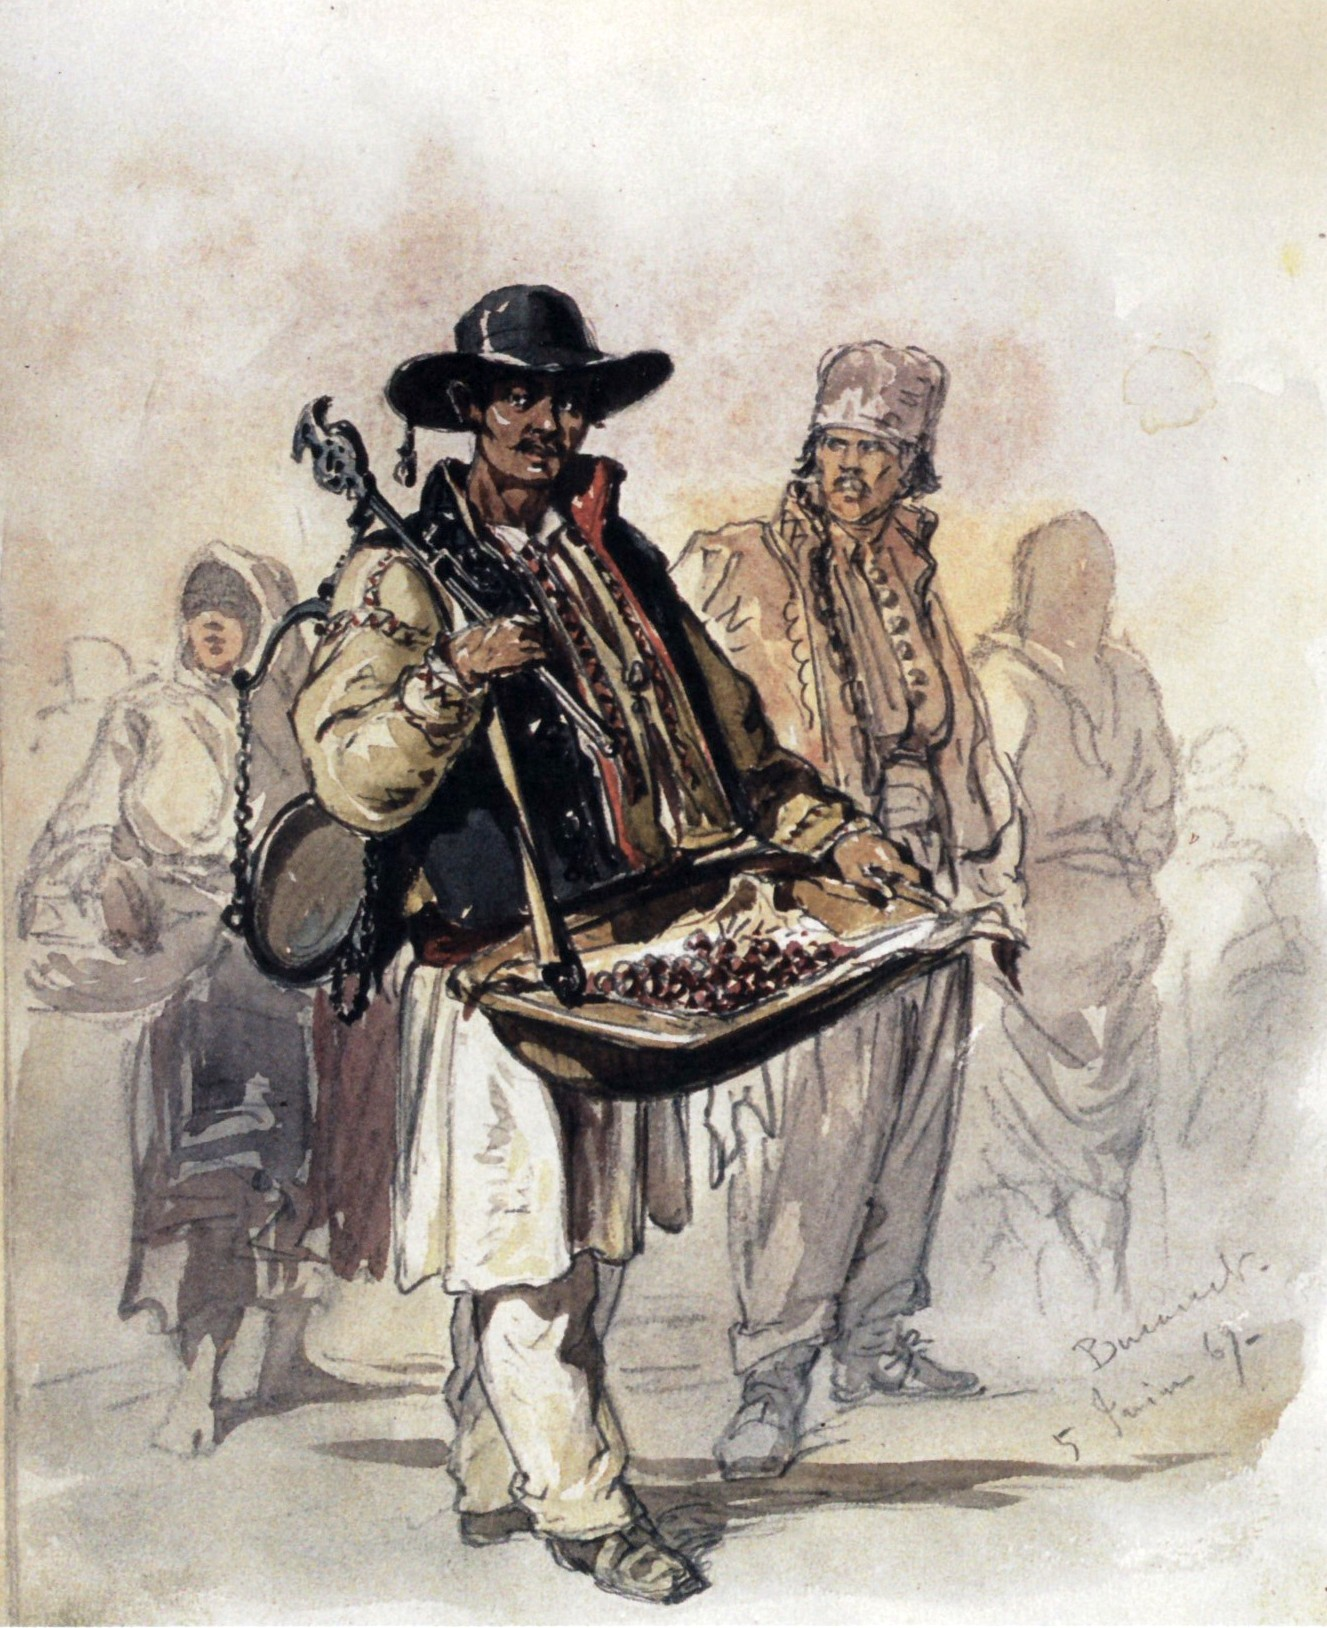 image of a peddler